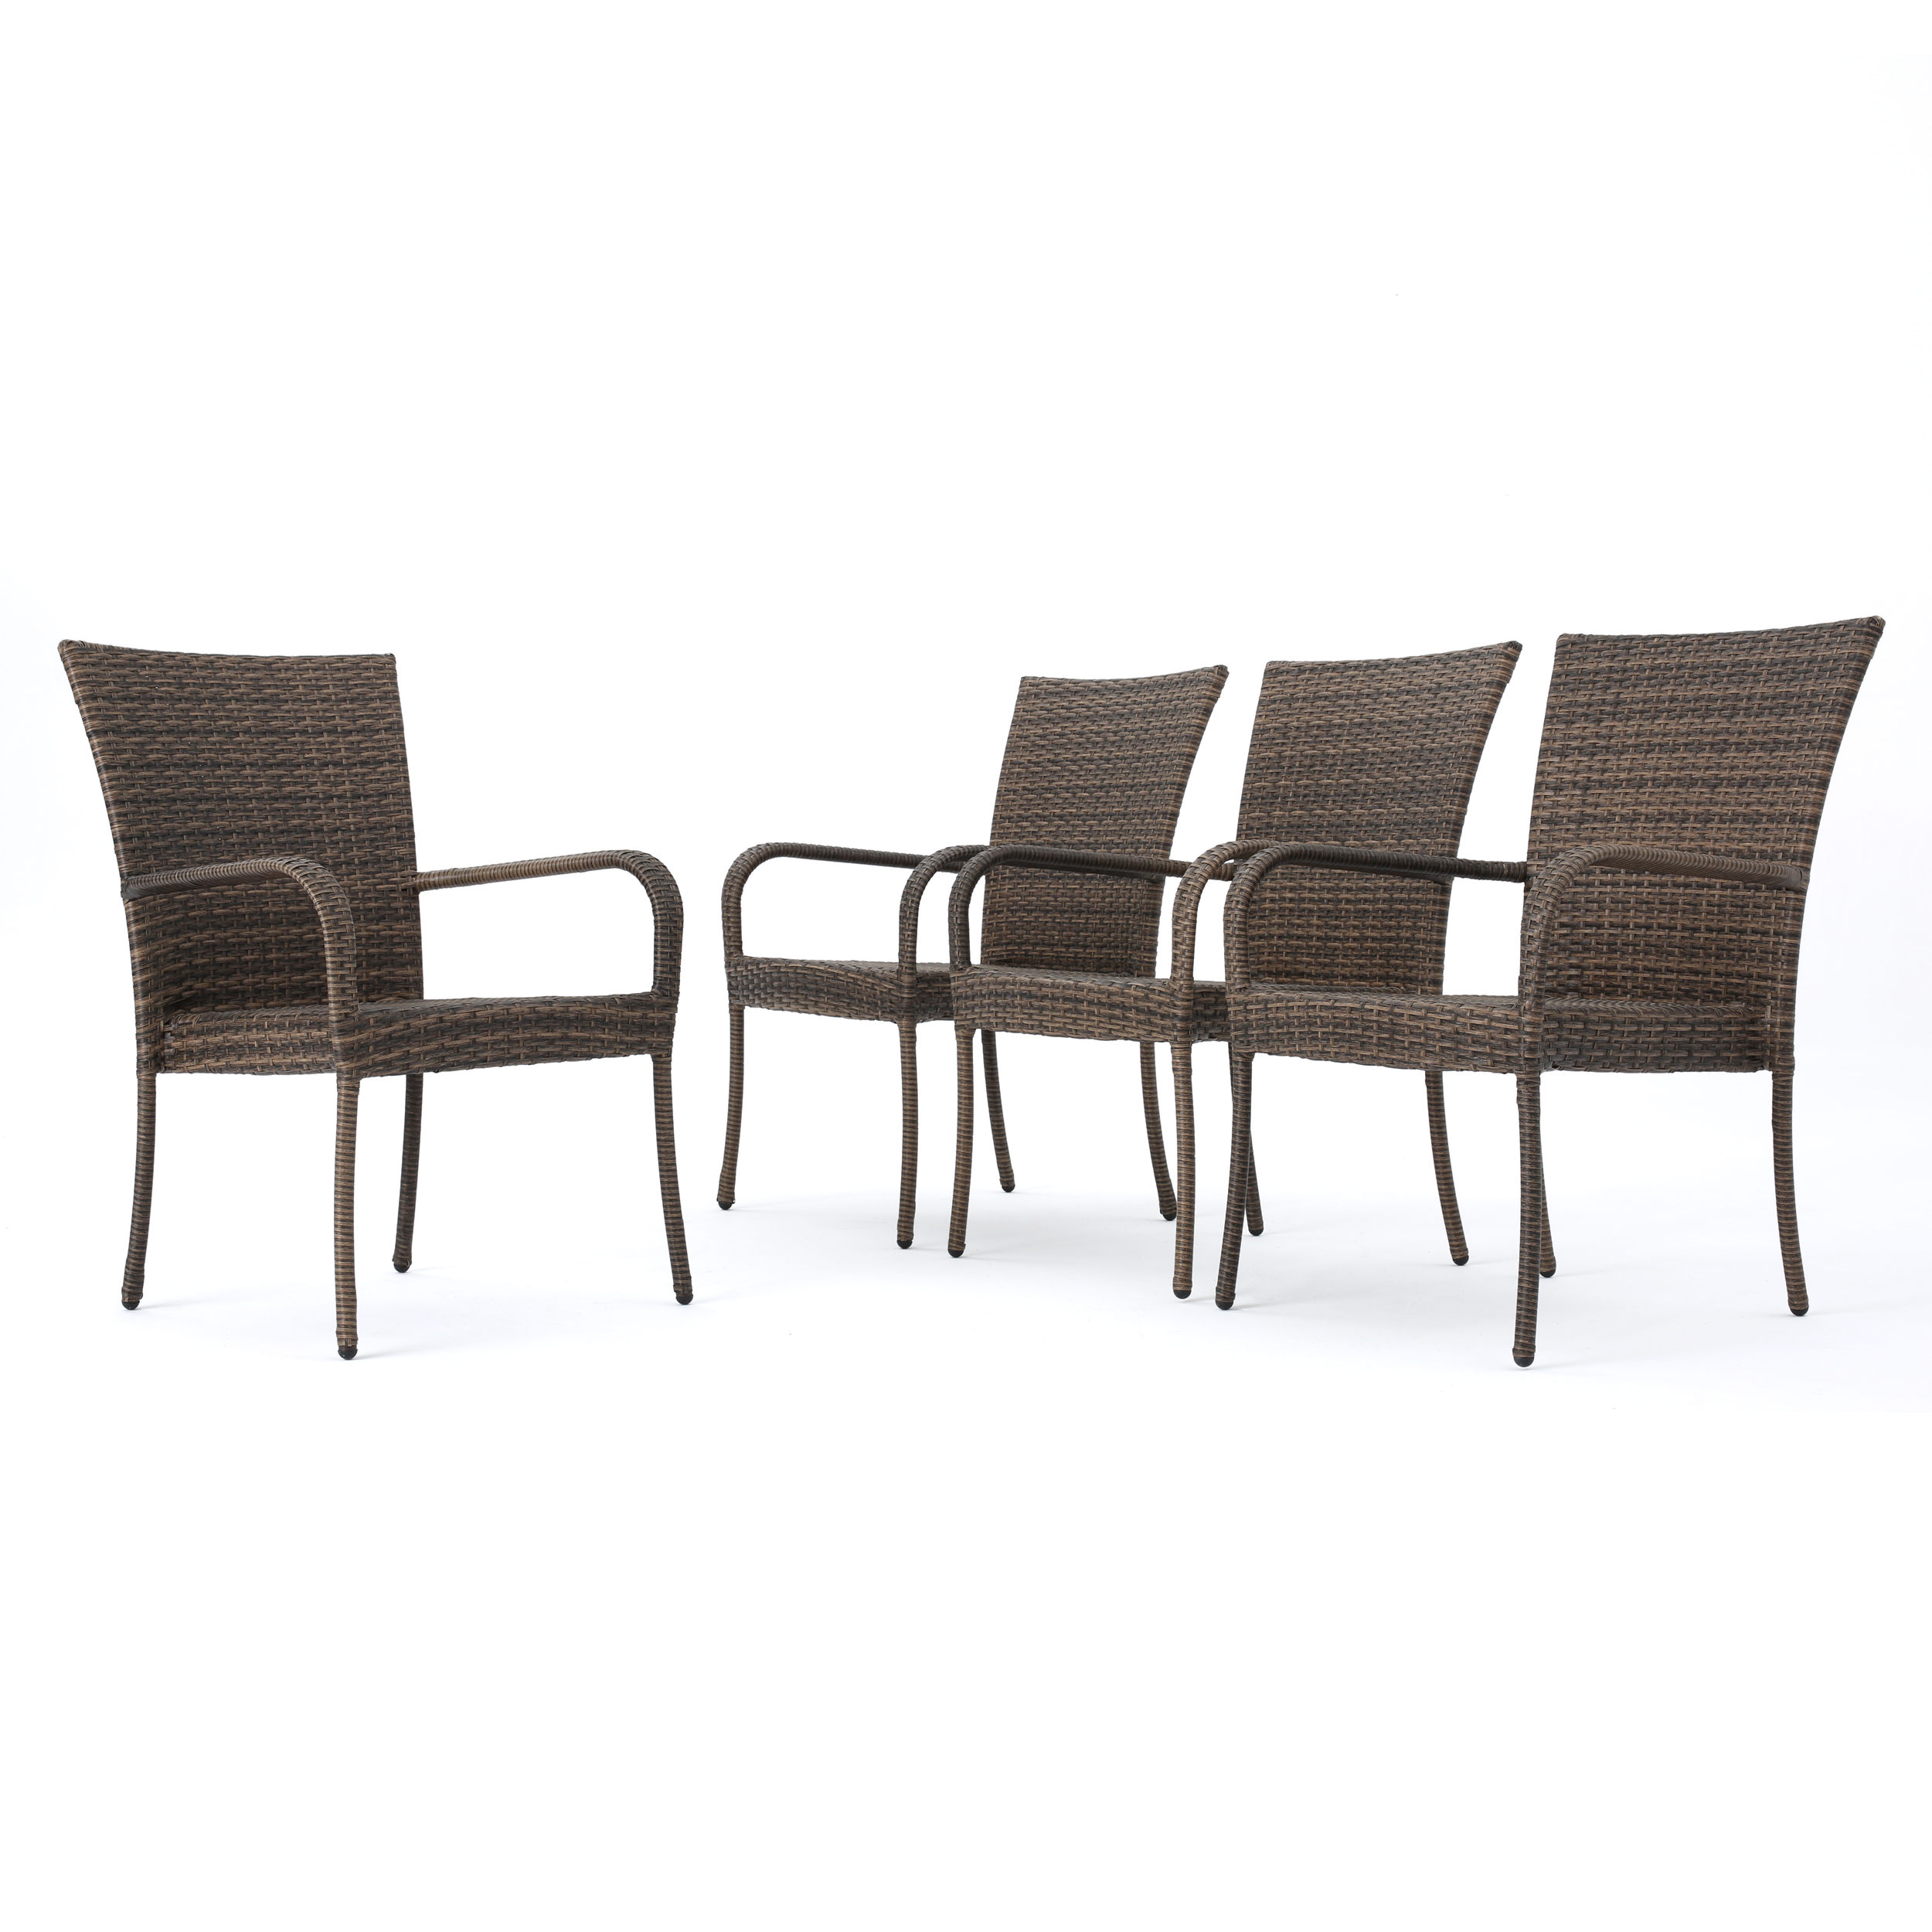 Chrystie Outdoor Wicker Stackable Club Chairs, Set of 4, Mixed Mocha